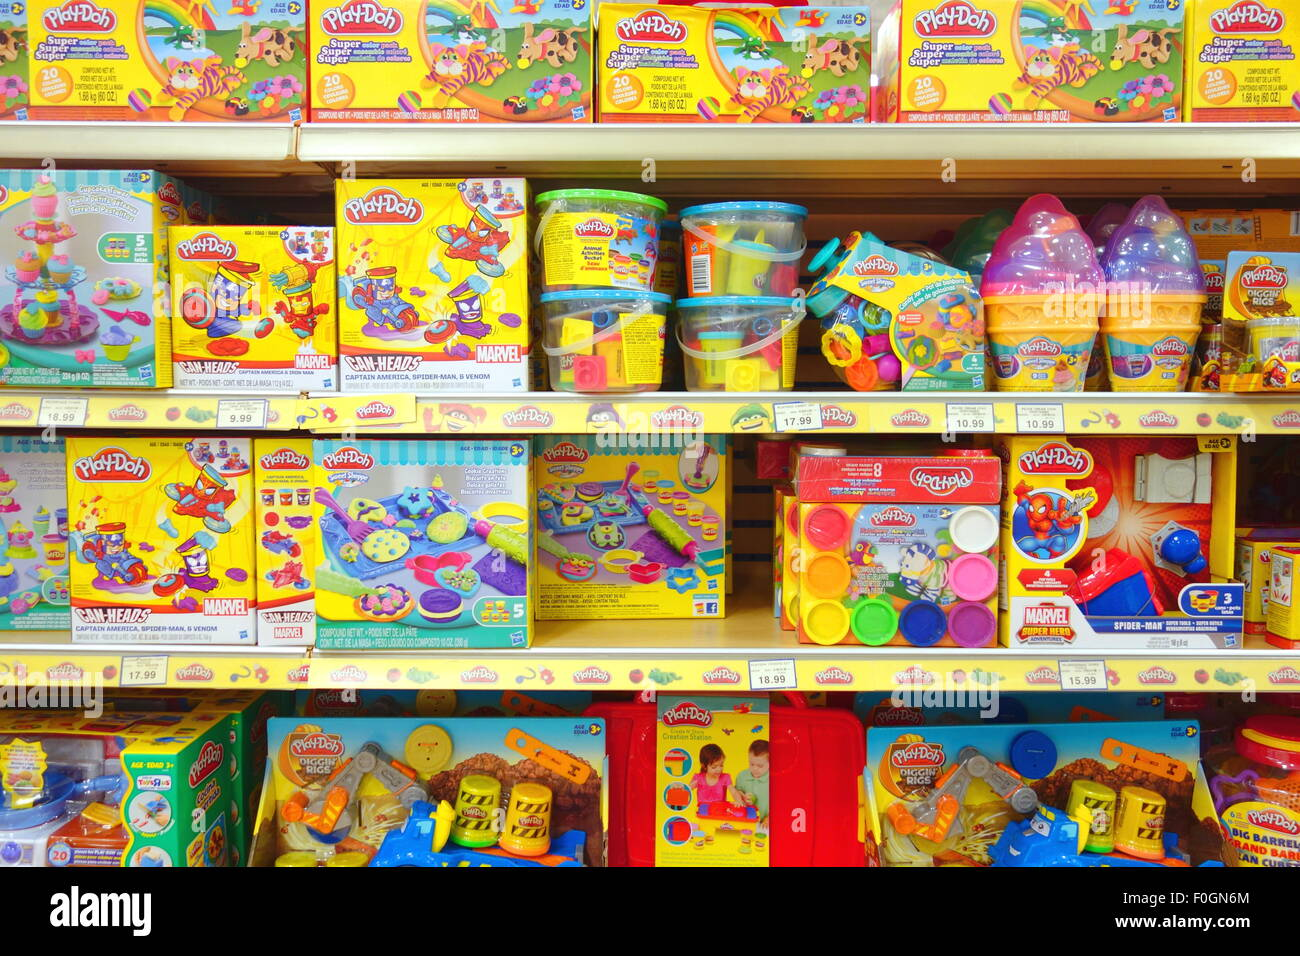 Toy Store Shelves Stock Photos Amp Toy Store Shelves Stock